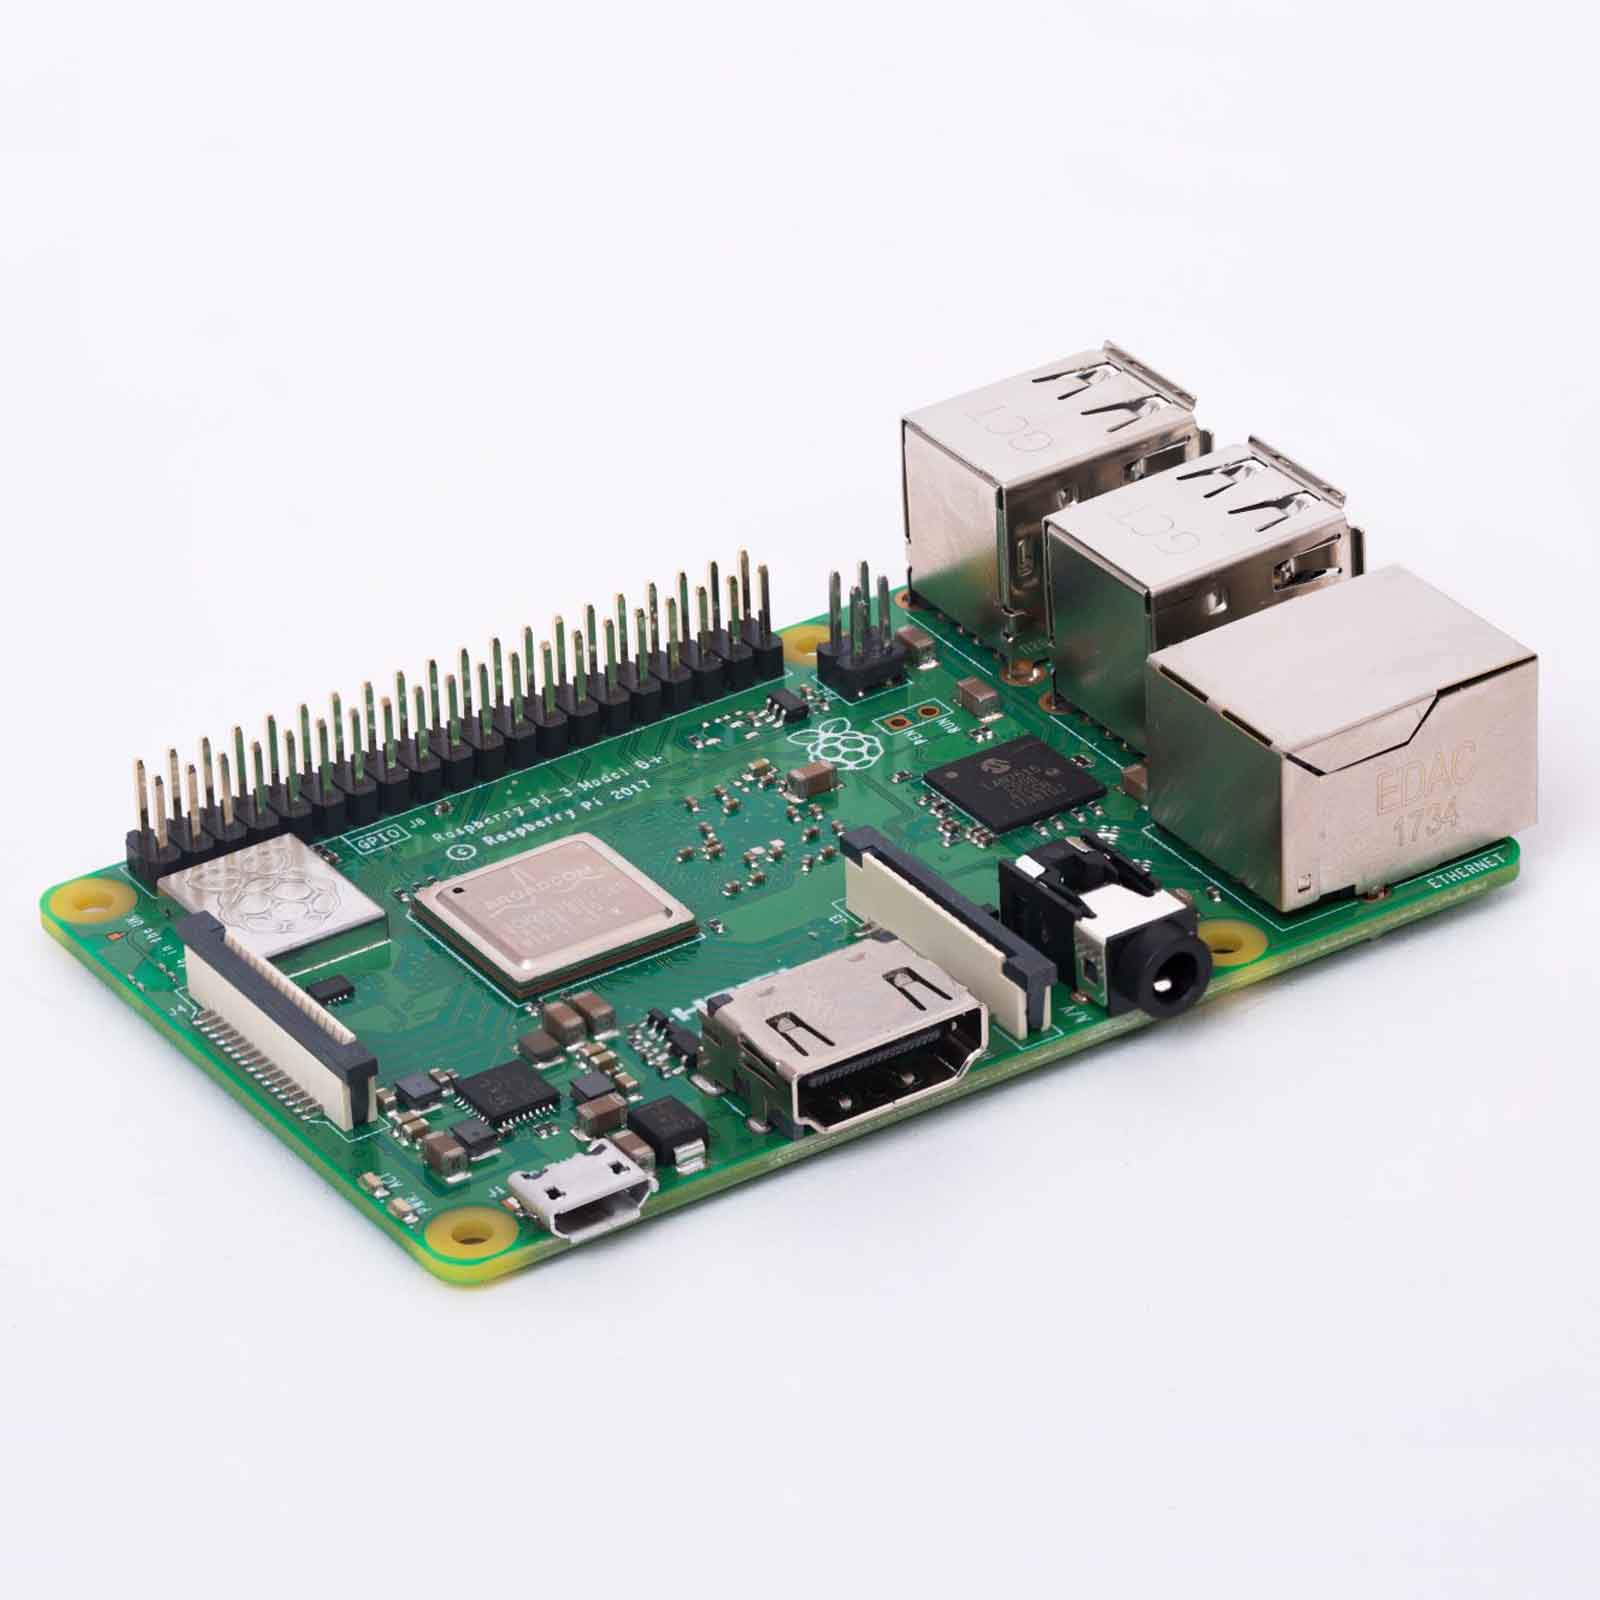 Raspberry Pi 3 model B+ :: wisp.pl